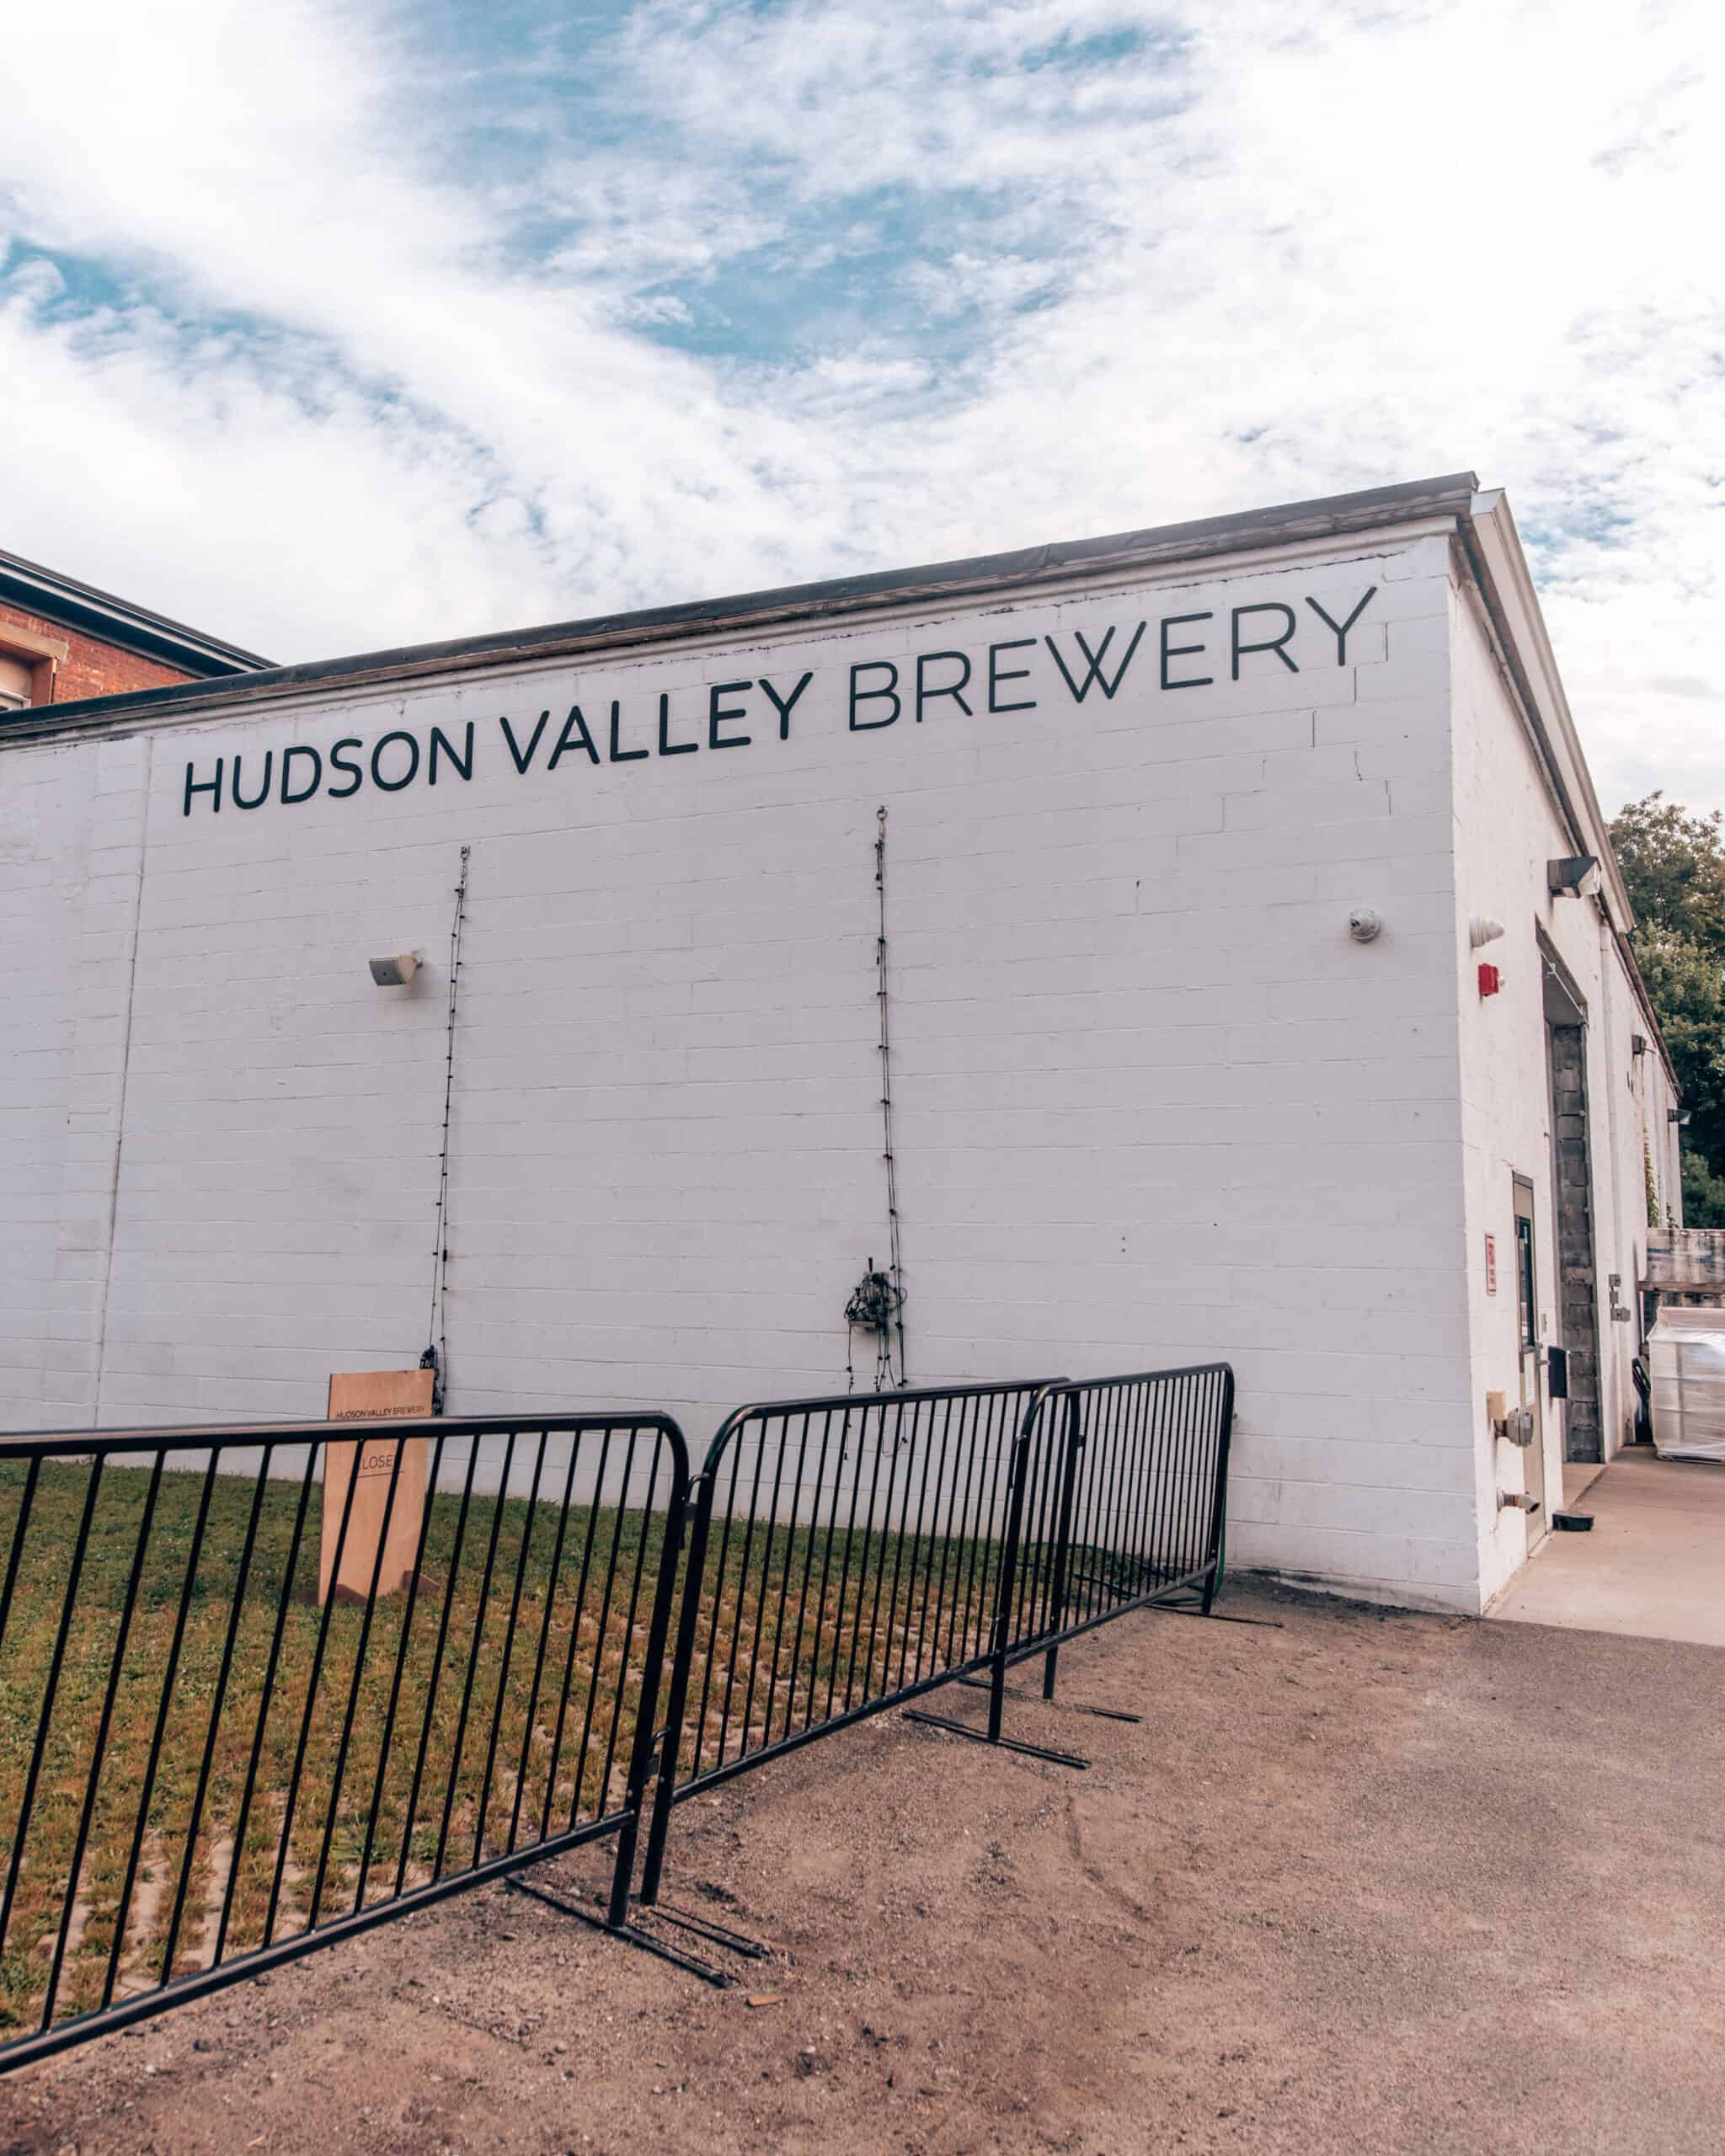 Breweries in the Hudson Valley